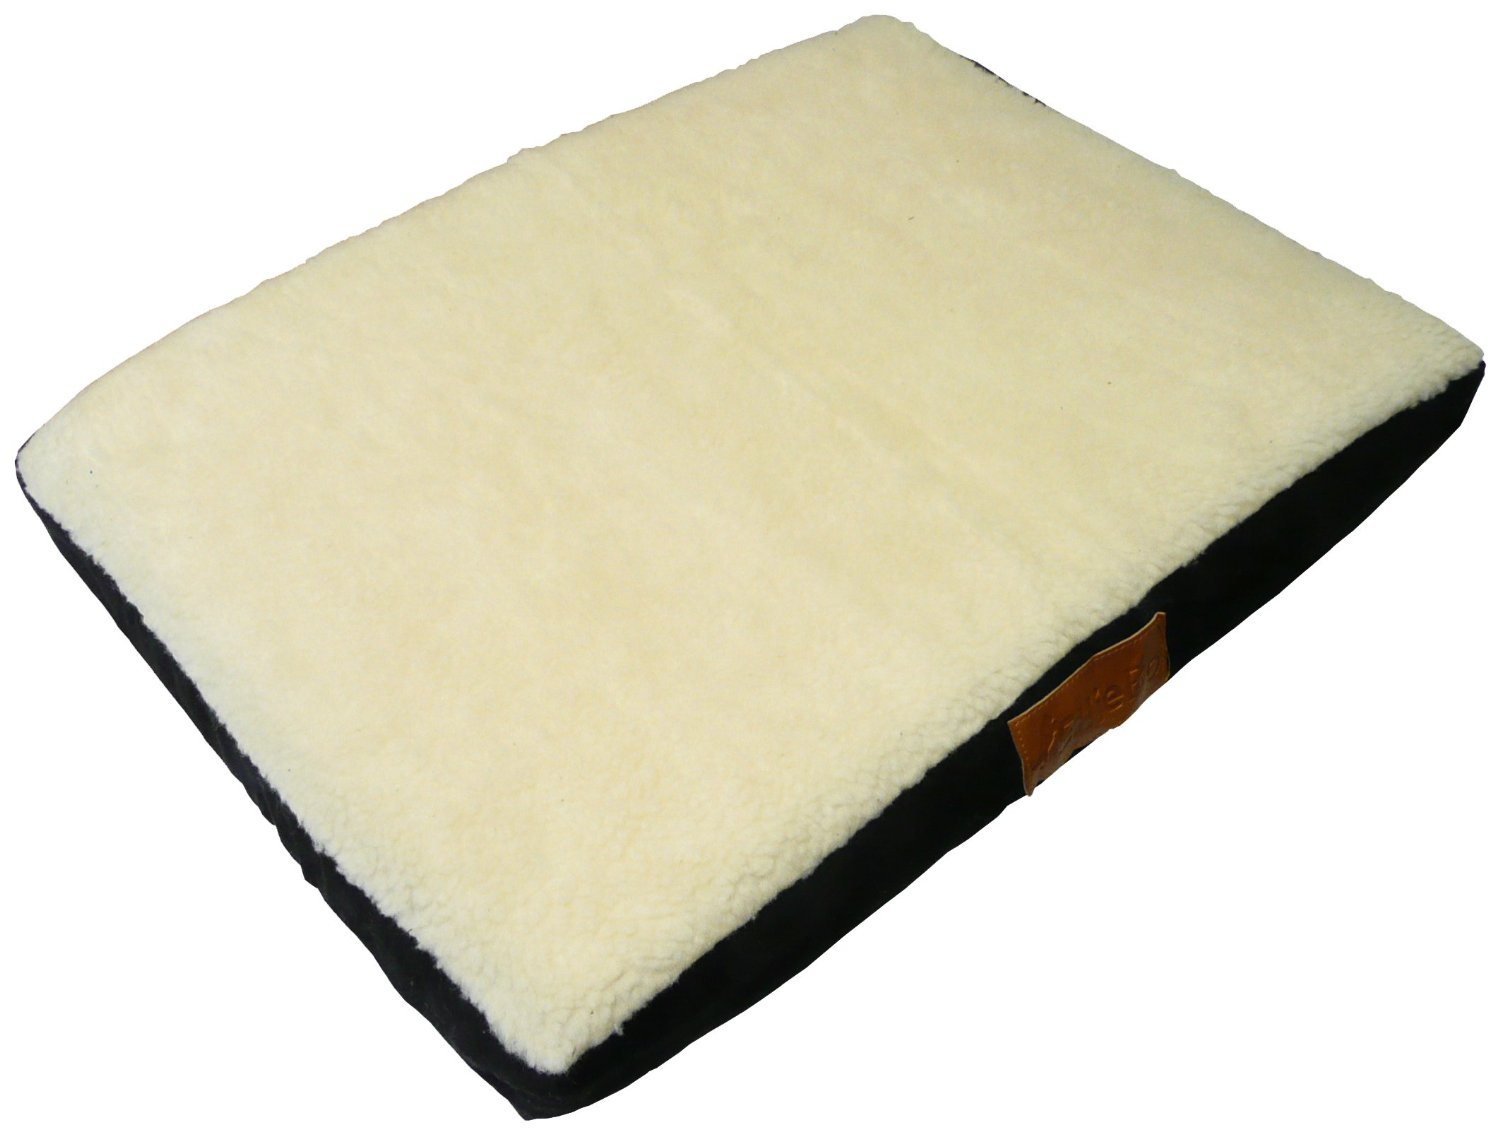 elliebo xxl black memory foam dog bed with faux suede and sheepskin topping to